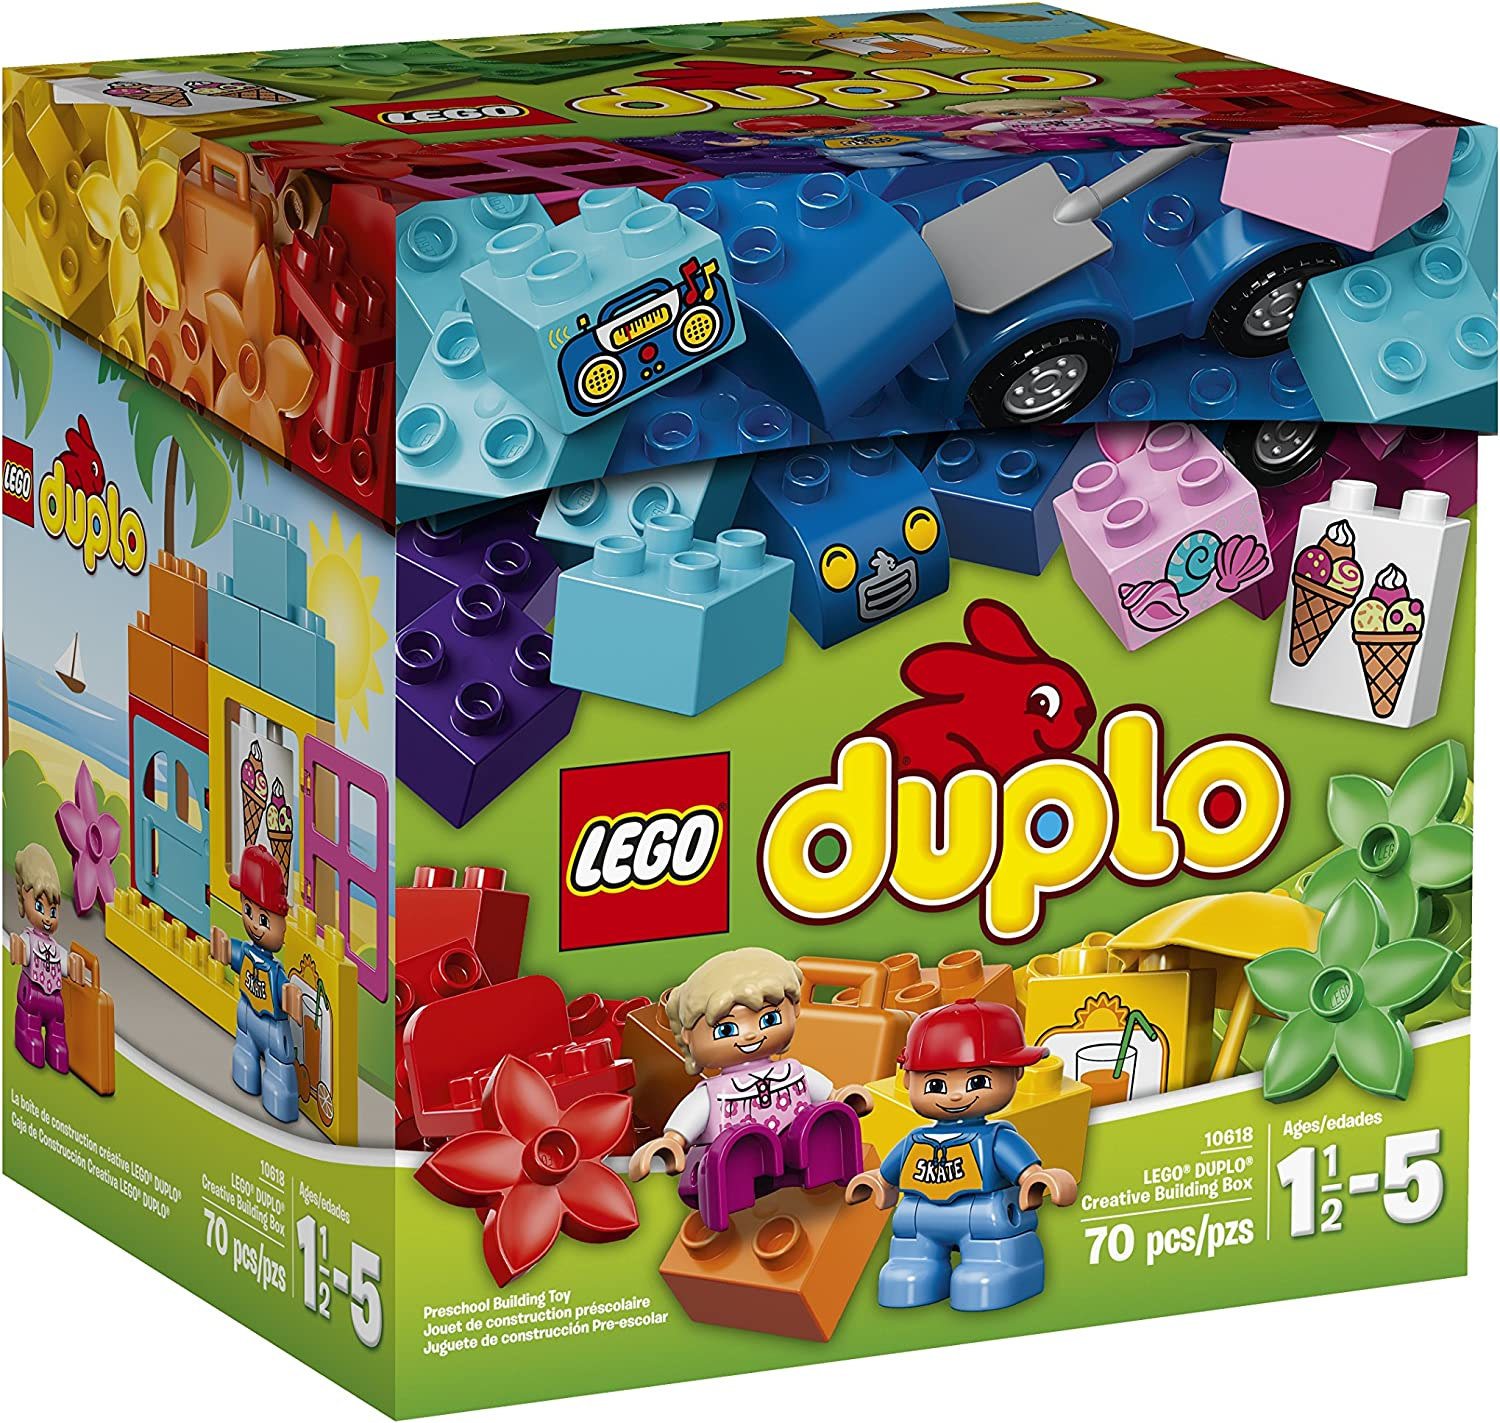 LEGO DUPLO My First 10618 Creative Building Box (Discontinued by manufacturer) by LEGO: Amazon.es: Juguetes y juegos